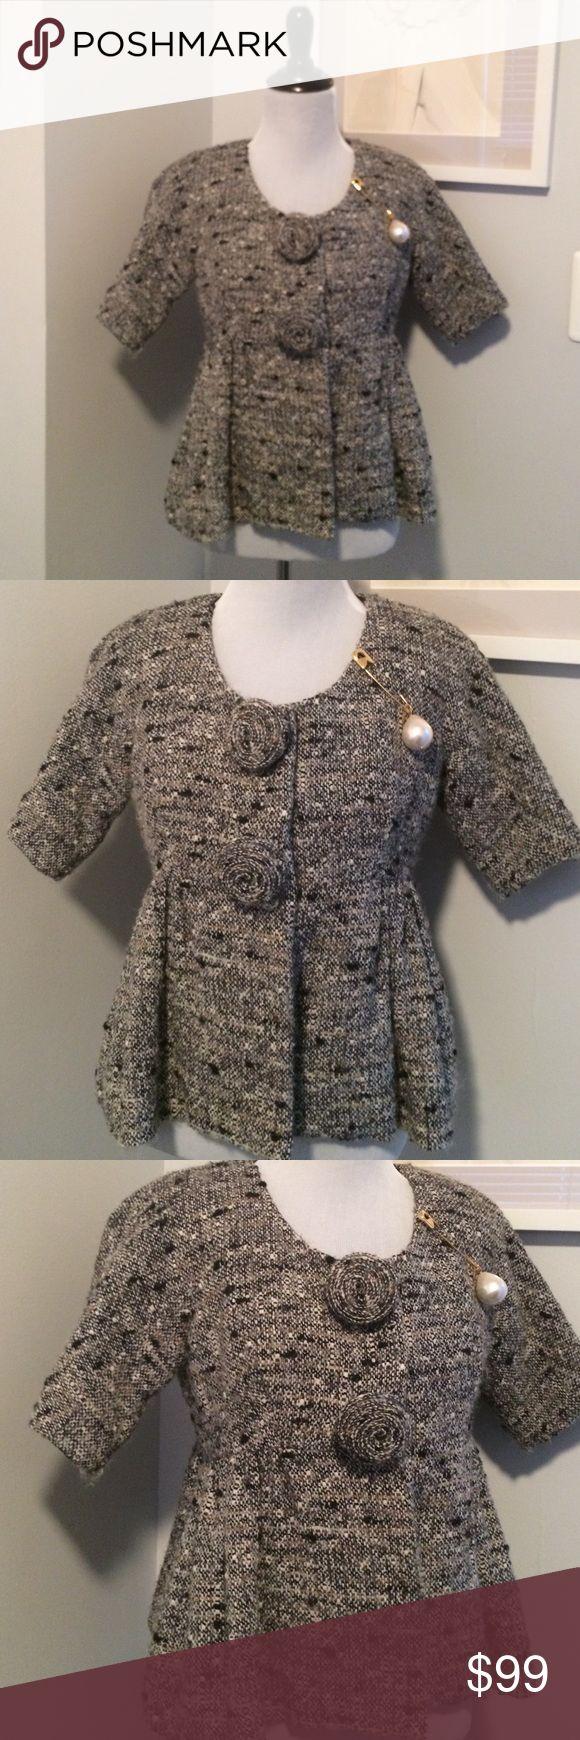 📌FINAL Adorable Vintage Tweed Anna Sui Jacket (Brooch not included) An adorable vintage tweed jacket by designer Anna Sui at her peak. Two sweet tweed roses where the jacket snaps are. The only flaw is deodorant marks inside the lining. I am pretty certain a good cleaner could get those out. Re-listed for photos. Anna Sui Jackets & Coats